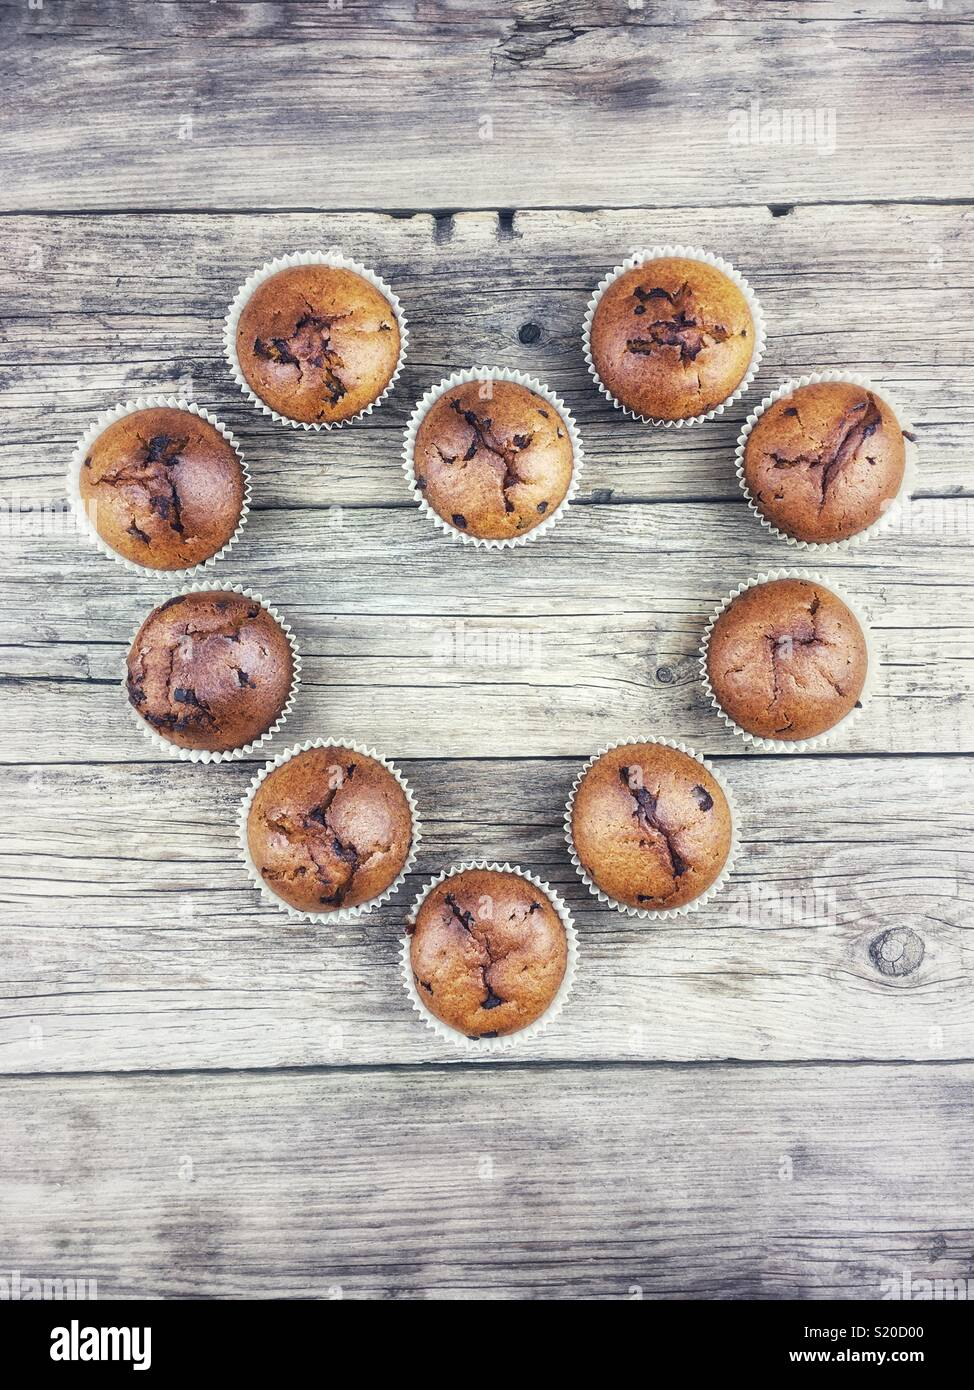 Top view of Chocolate muffins on a wooden table - Stock Image